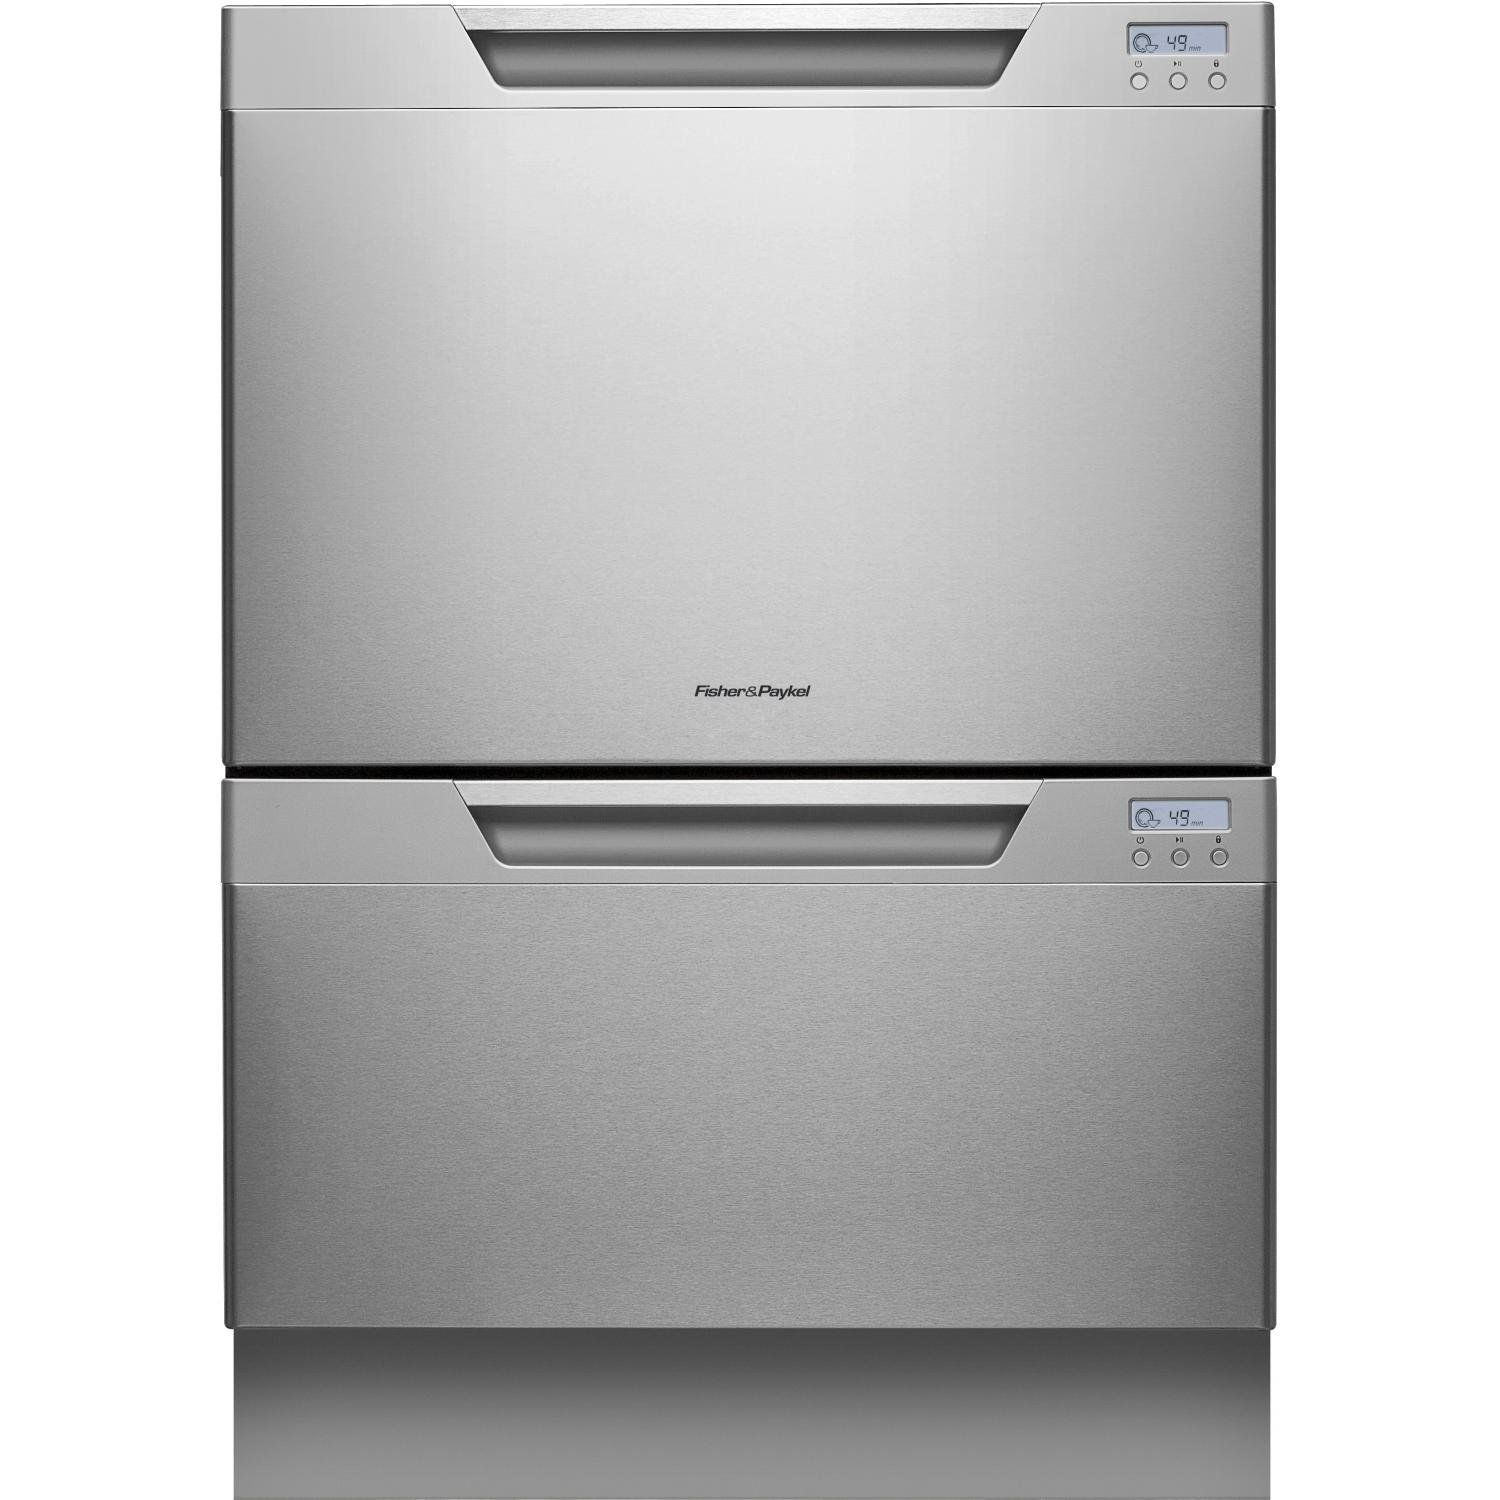 Fisher Paykel Dd24dcx7 Dishdrawer 24 Stainless Steel Fully